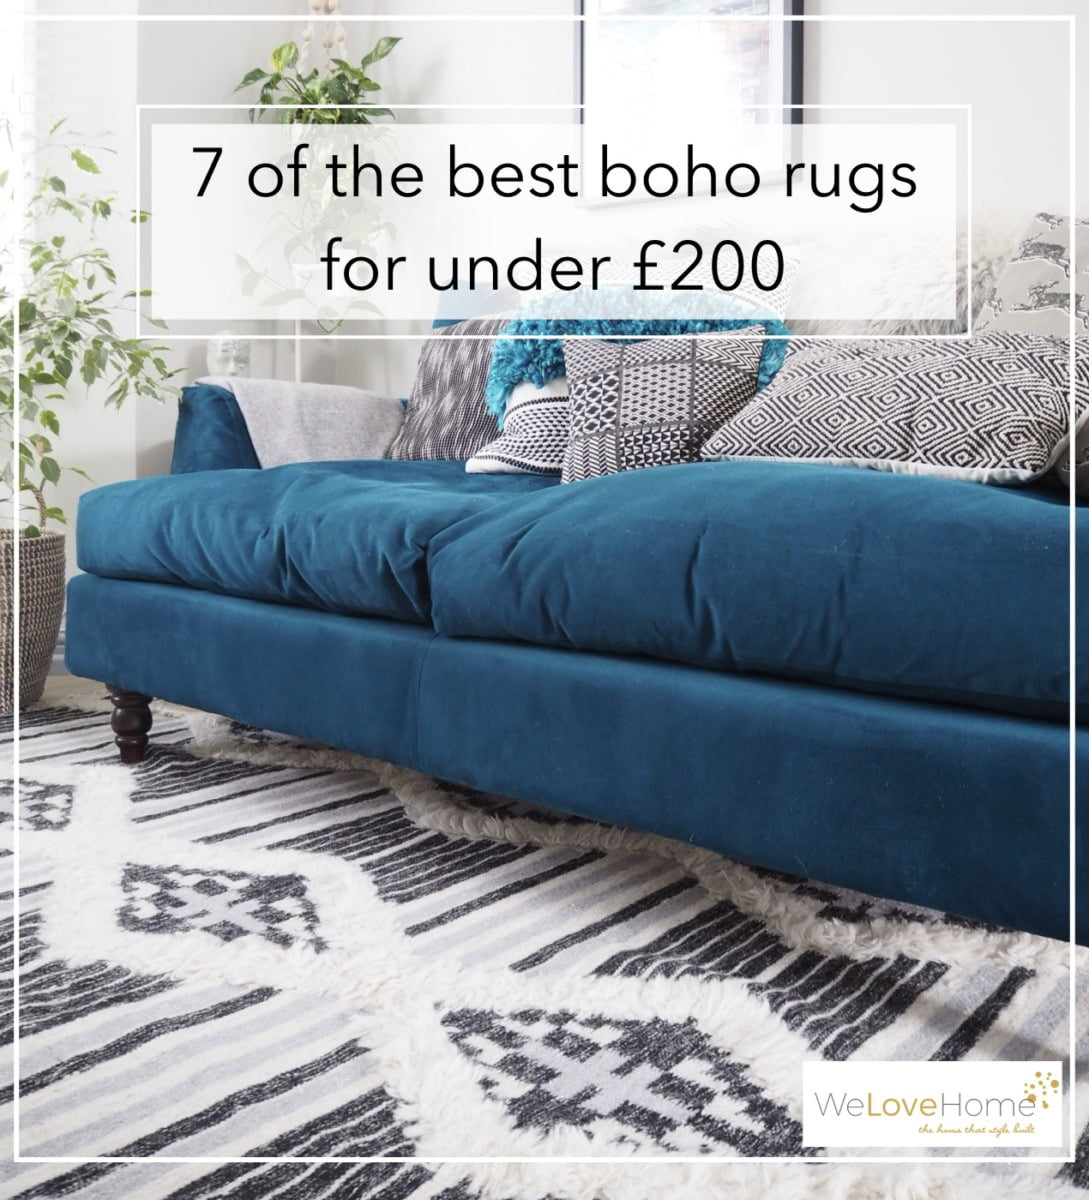 7 of the best boho rugs for under £200 by Interior Stylist + Design Blogger Maxine Brady from WeLoveHomeBlog